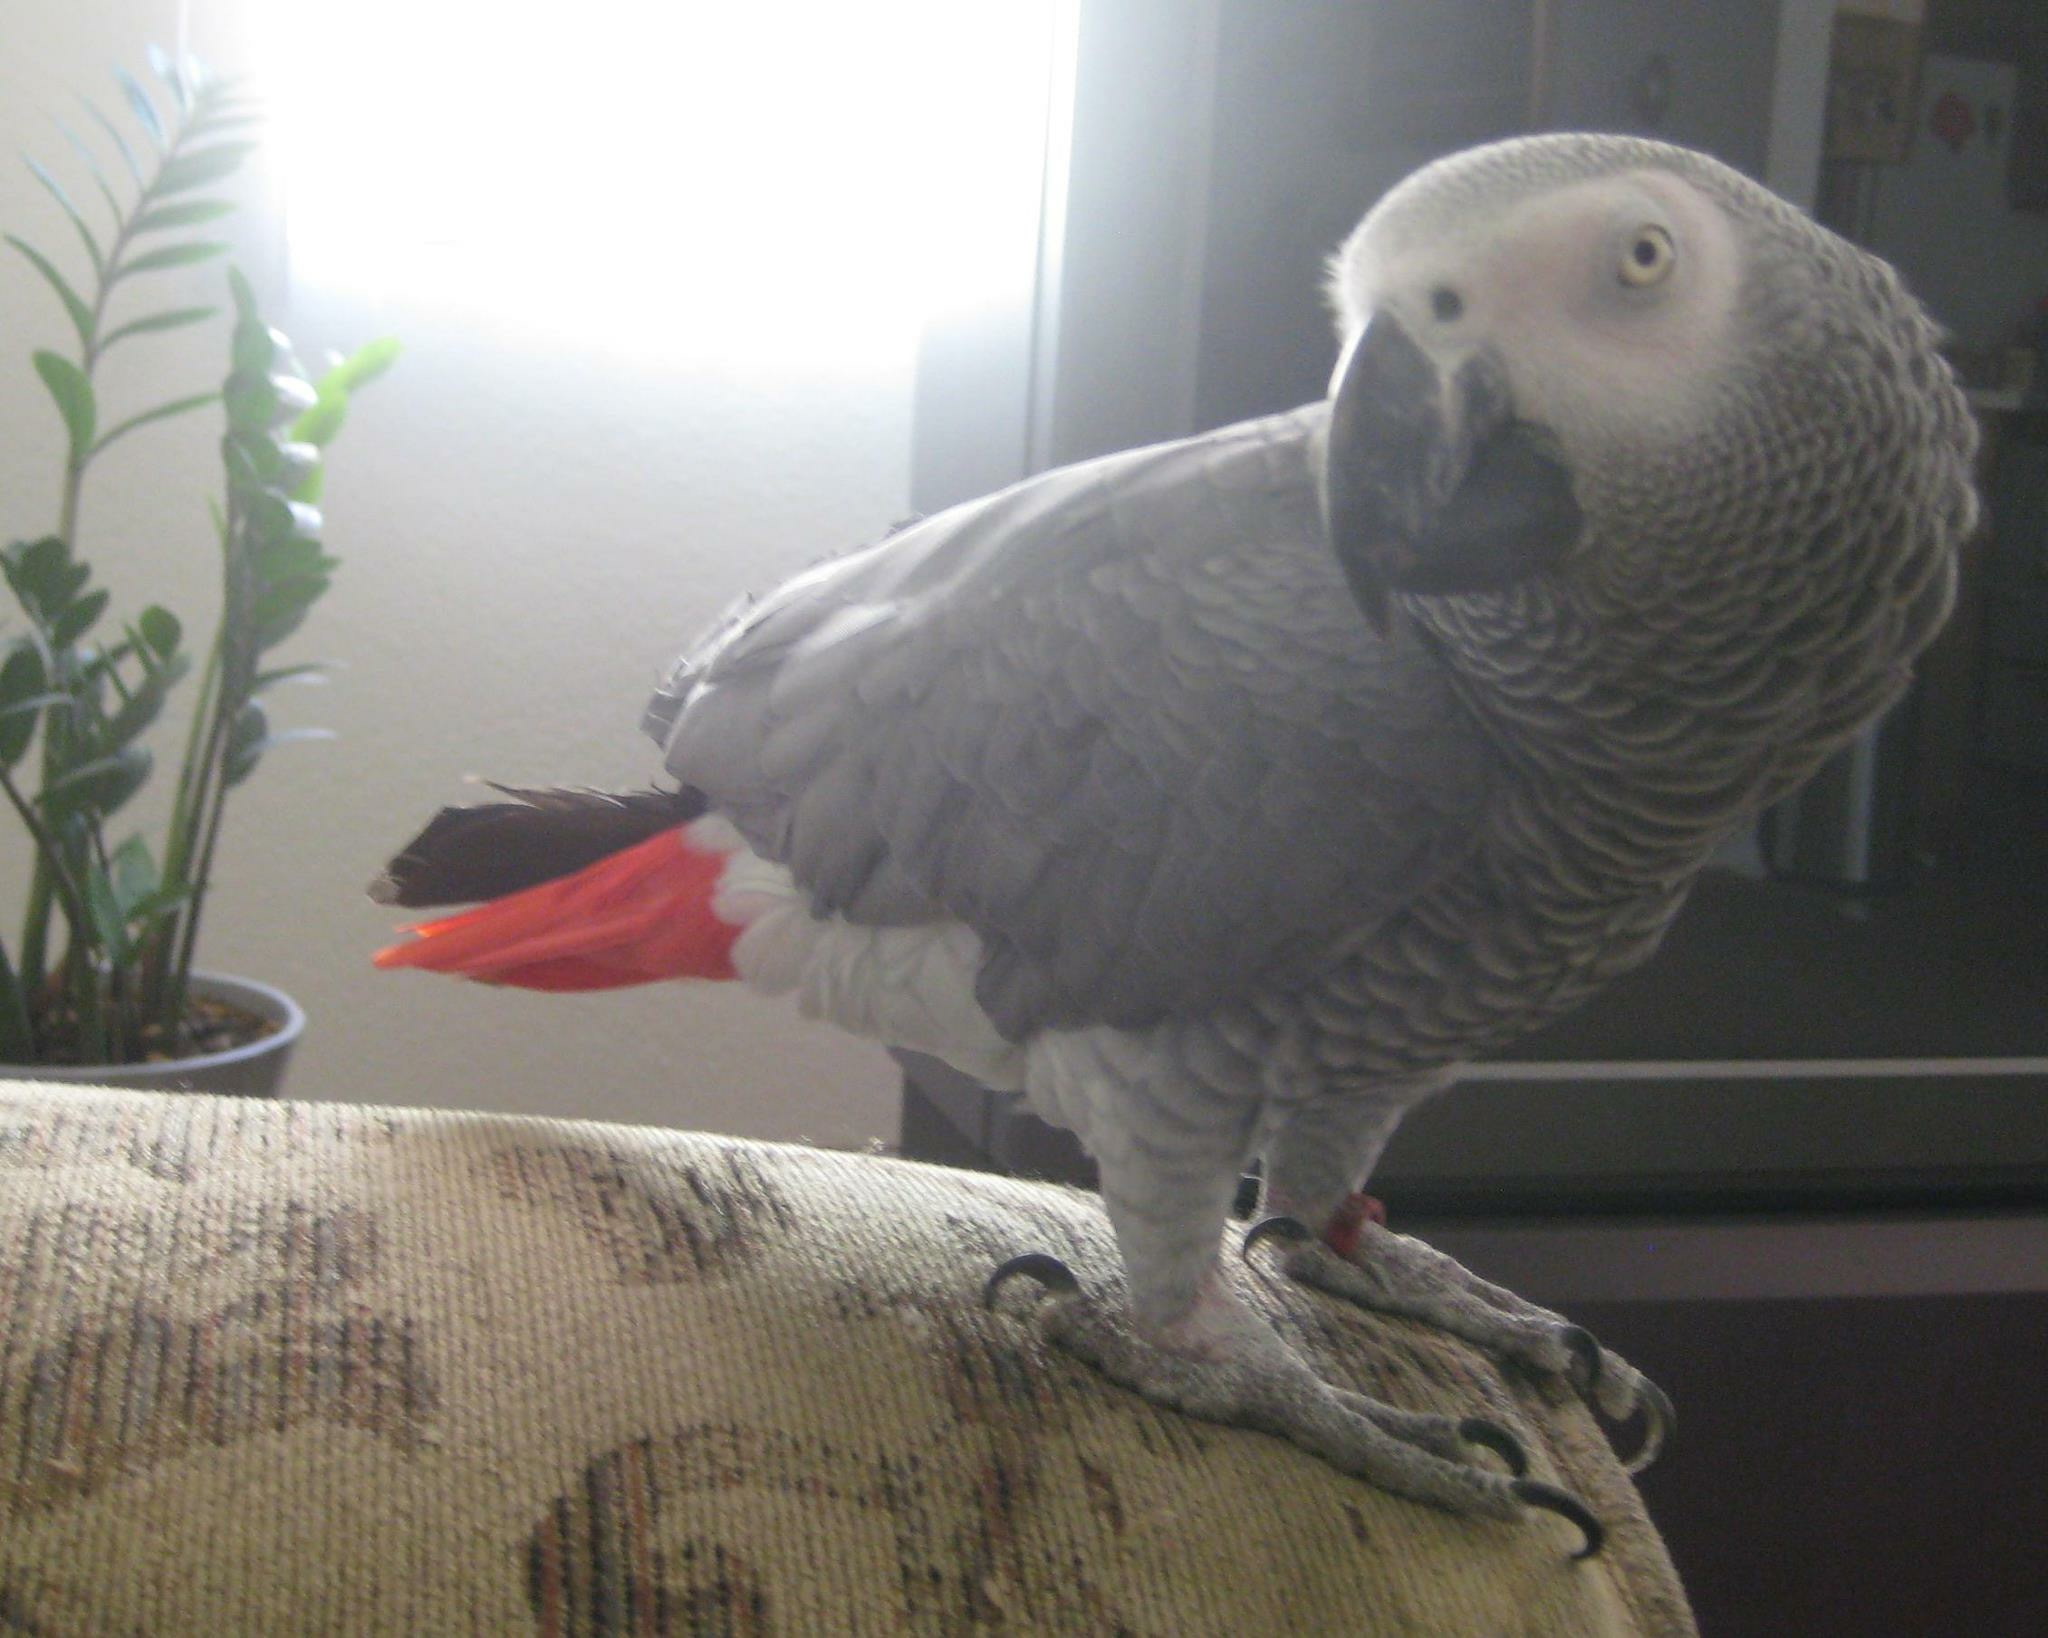 LOST AFRICAN GREY TALKING PARROT IN NORTHRIDGE CA